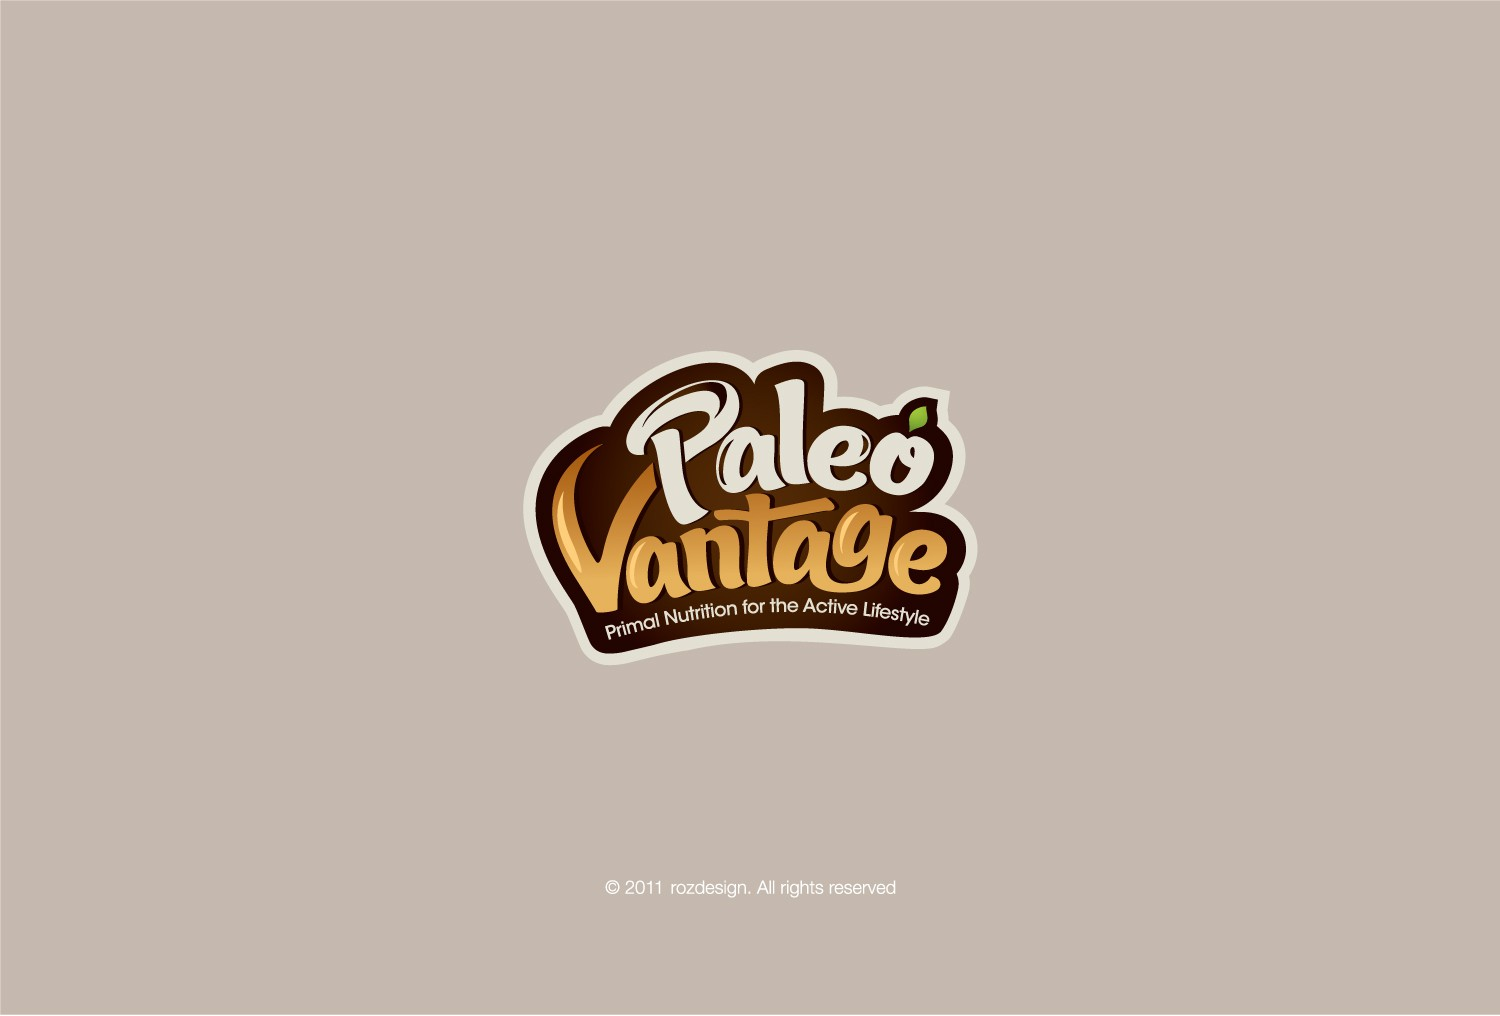 New logo wanted for PaleoVantage